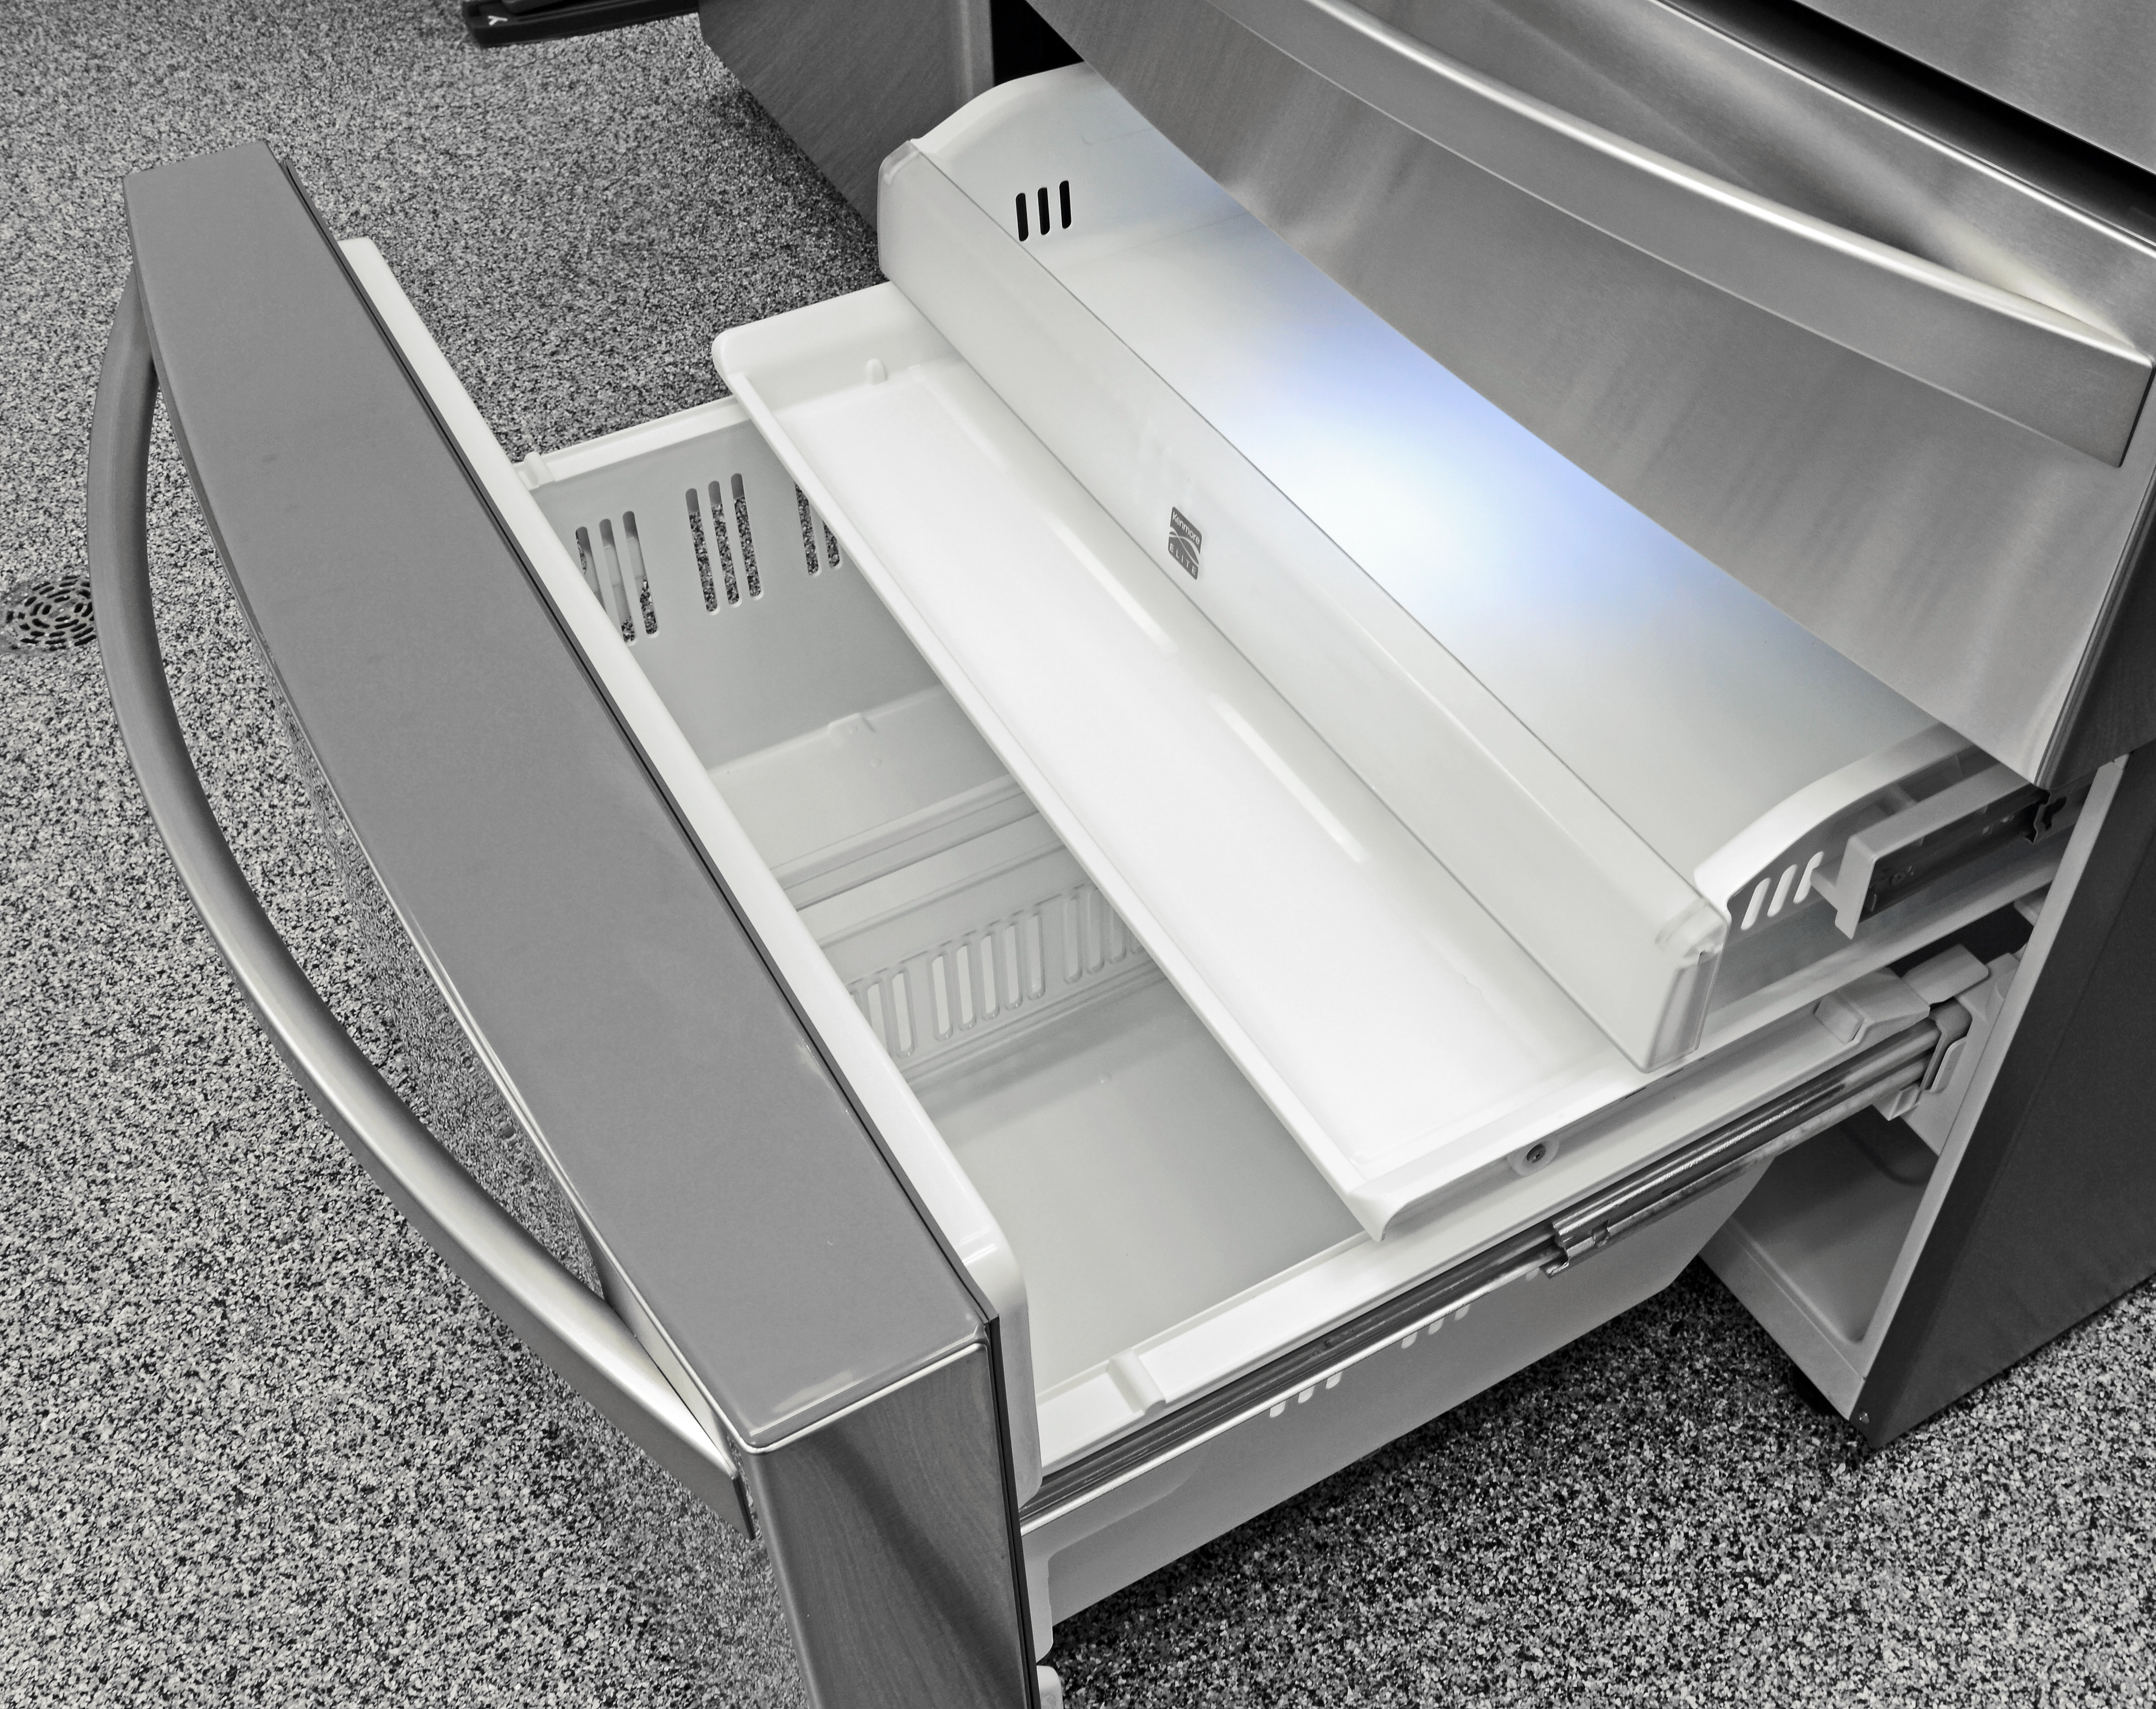 The Kenmore Elite 72483's freezer has multiple drawers of varying heights that will help keep your frozen food organized.